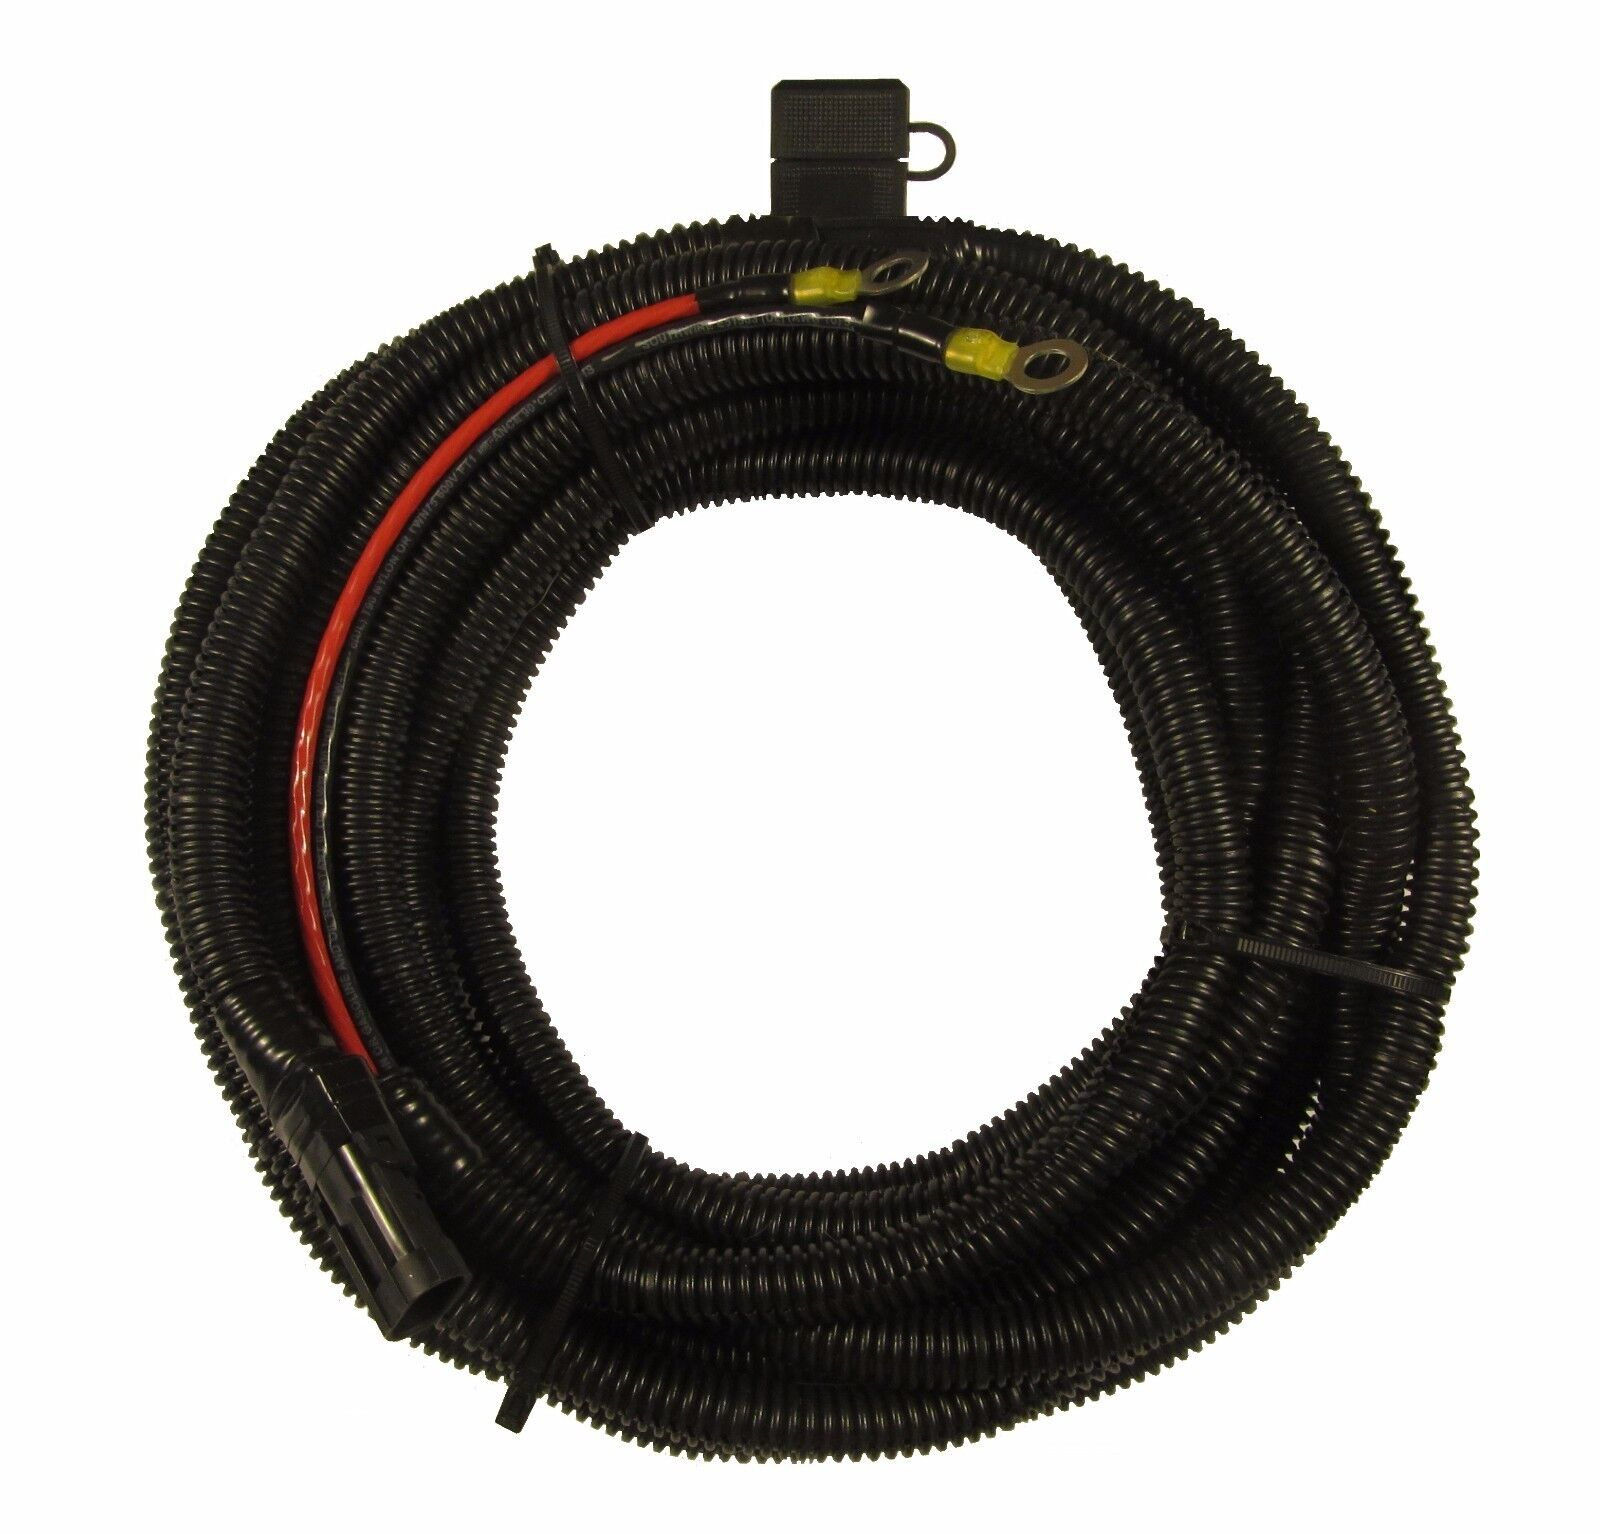 s l1600 harmar electric lift battery cable wiring harness 25ft 10 gauge ebay battery cable wiring harness at honlapkeszites.co